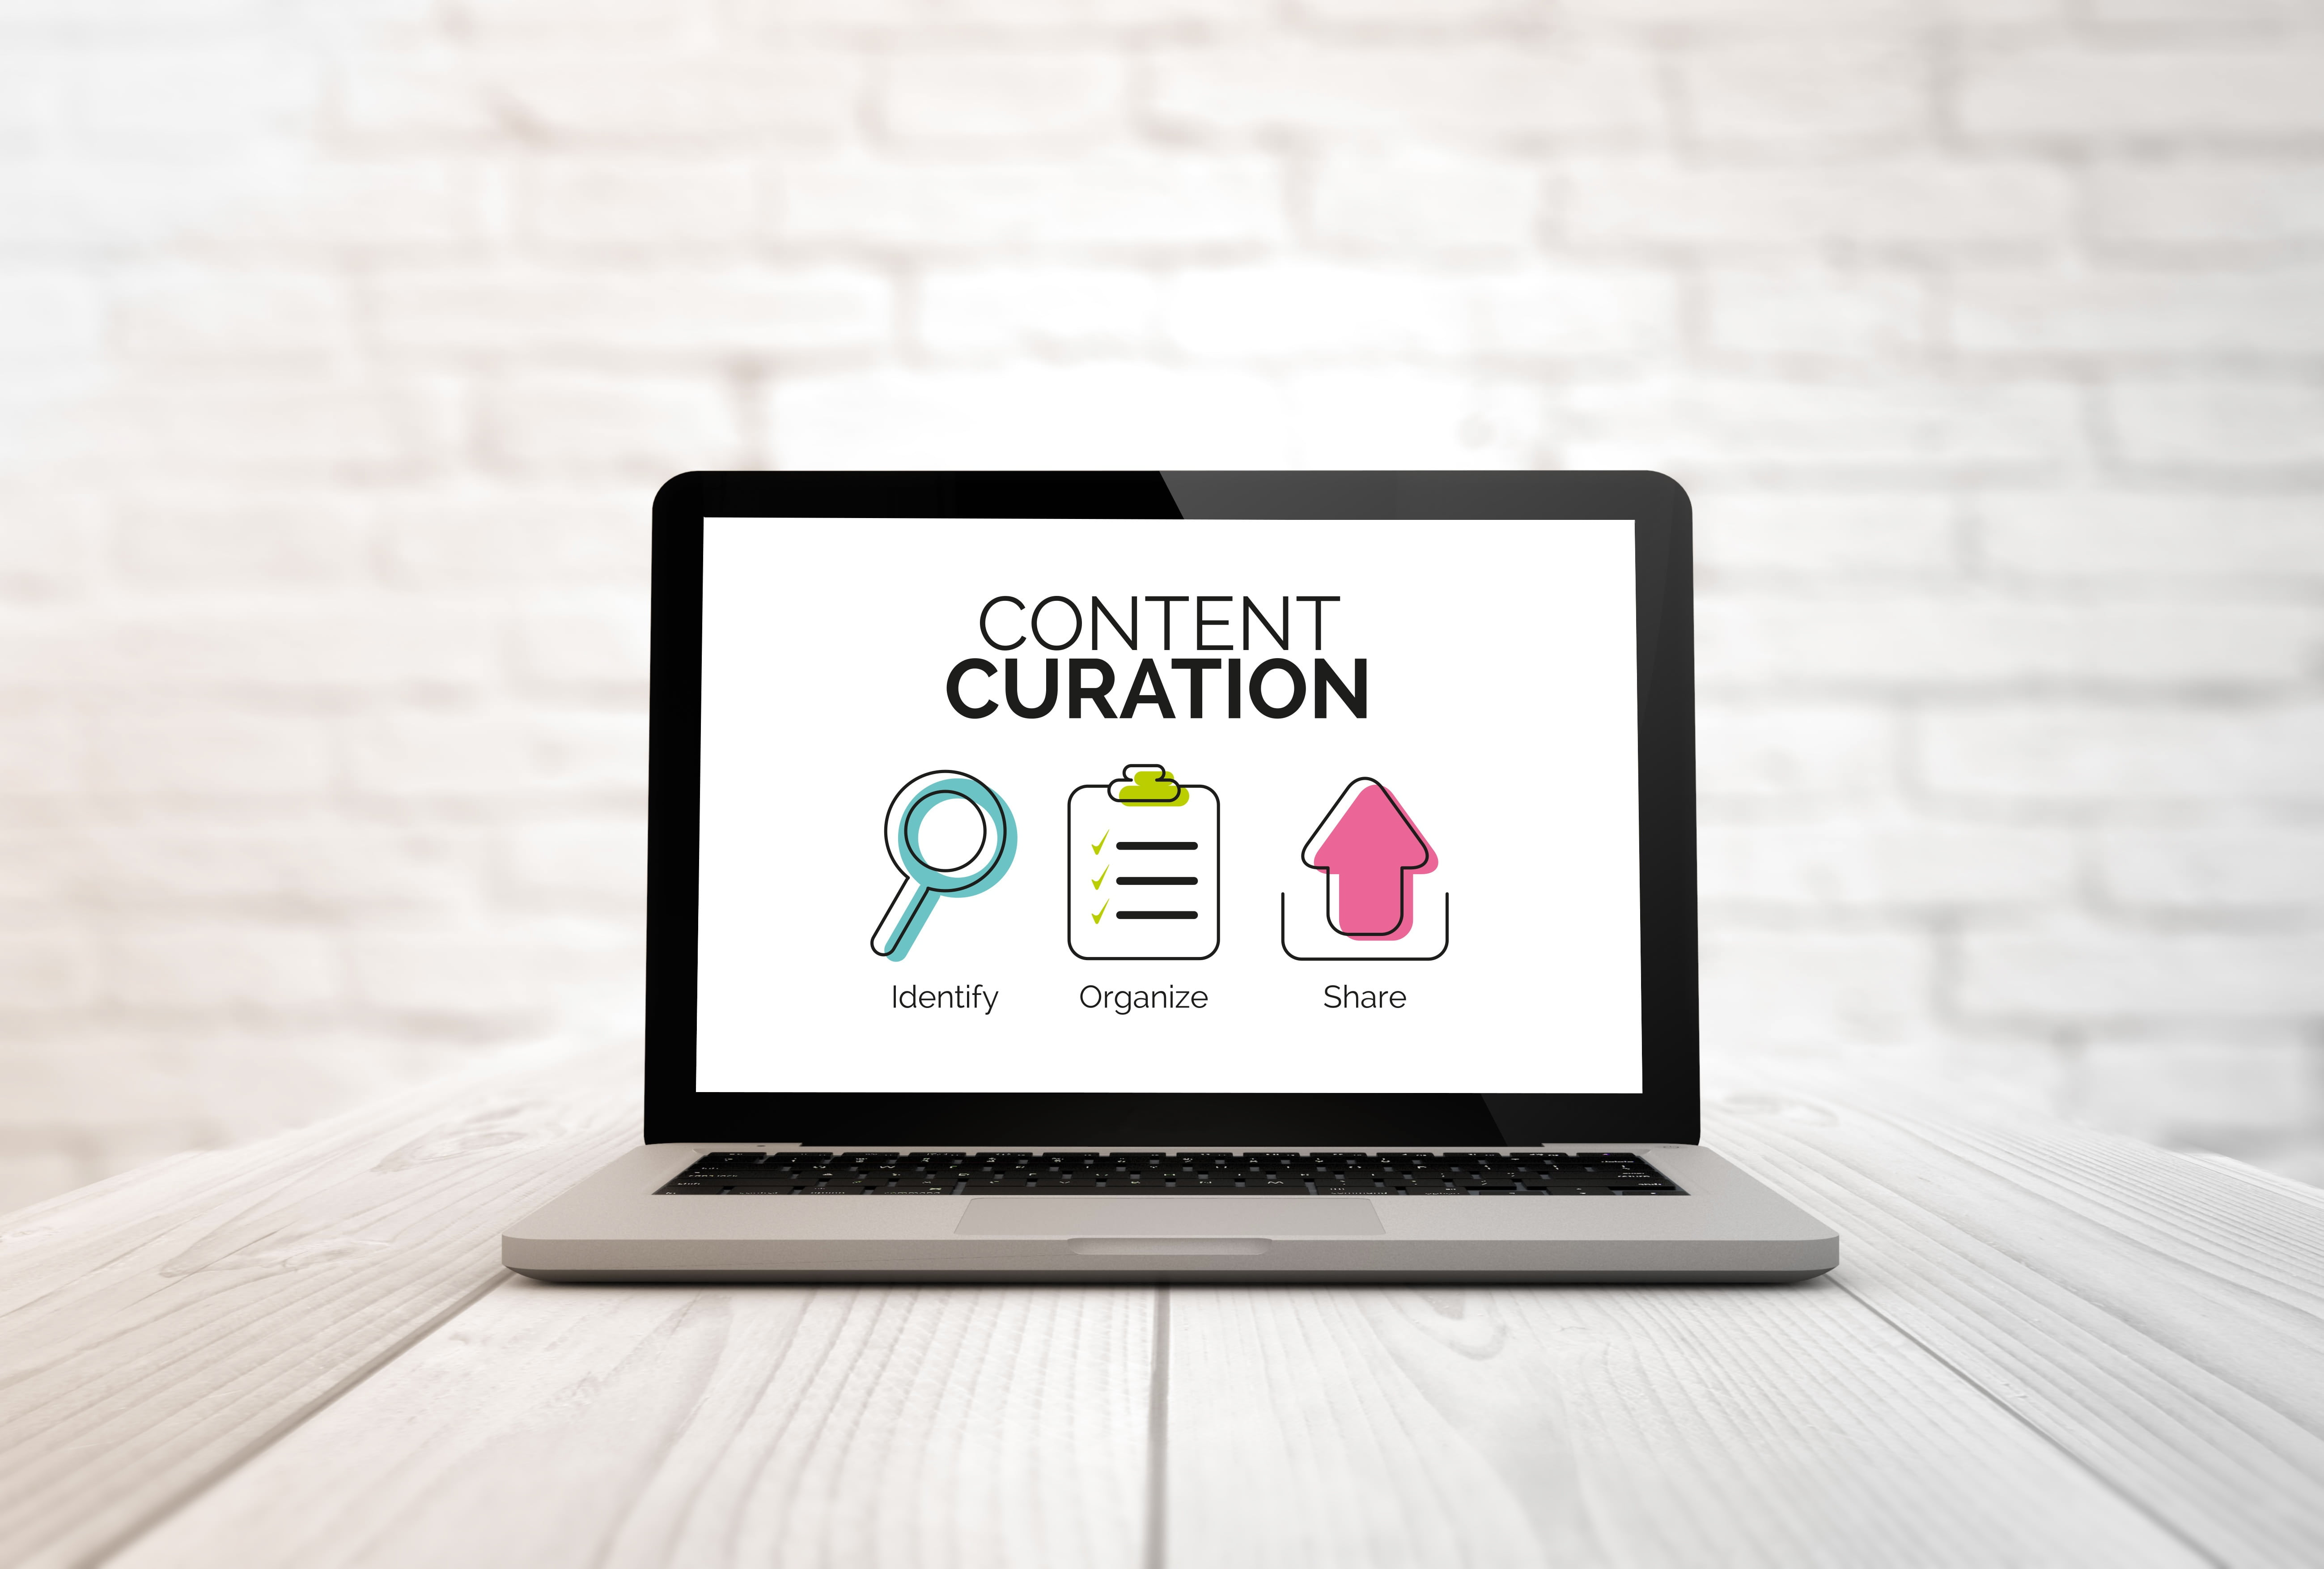 Comment utiliser la curation de contenu au service du marketing B2B ?